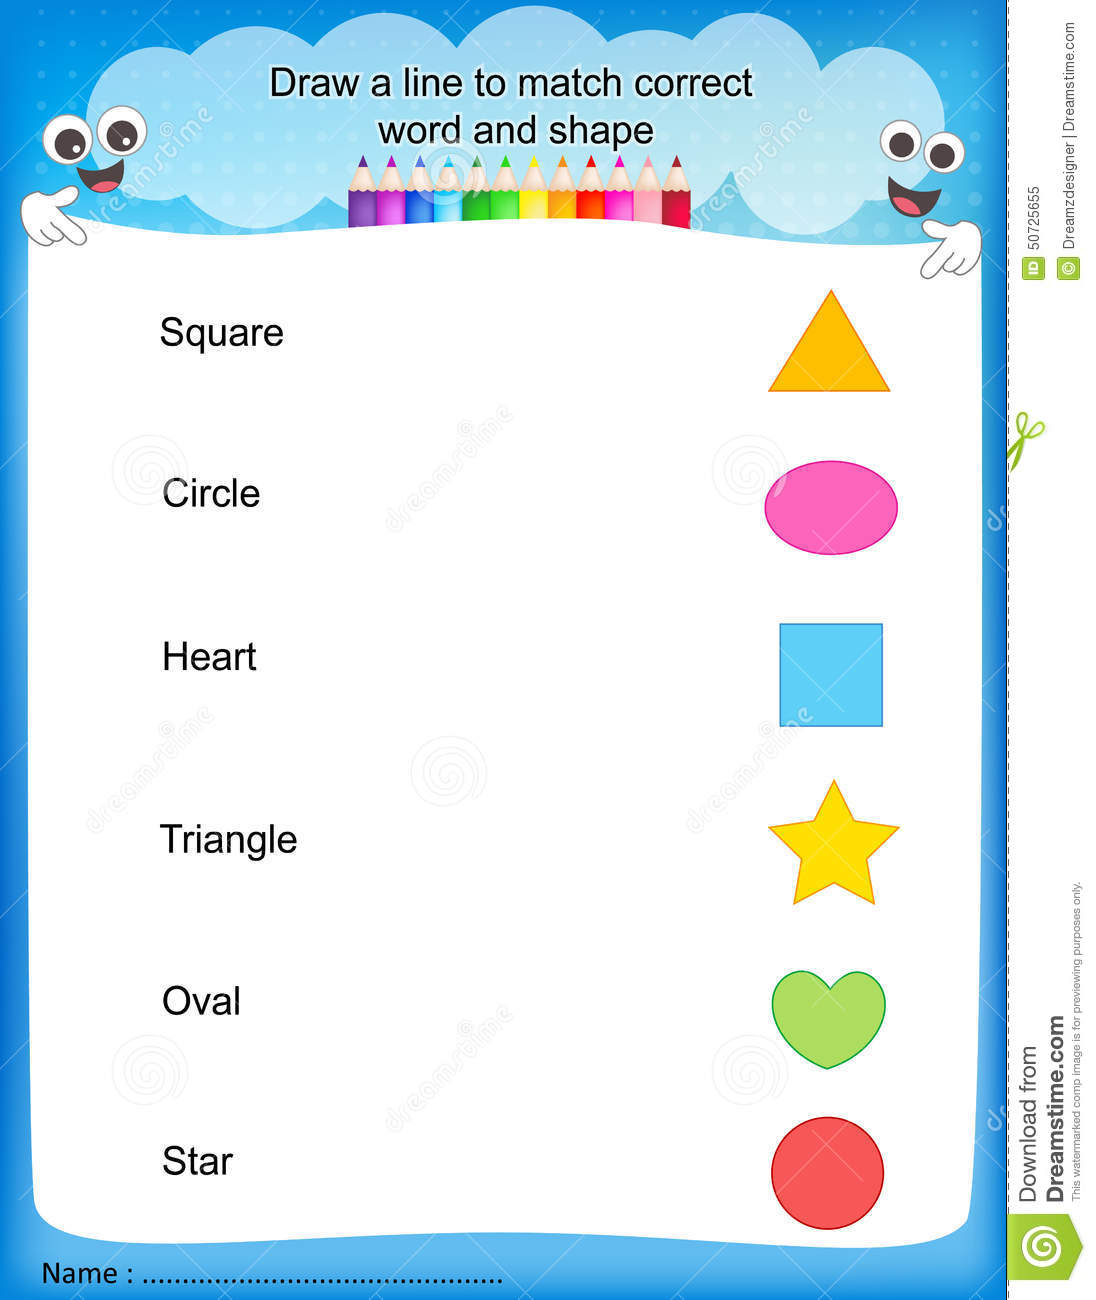 Pre Shapes Matching Worksheets and Activities   Little Dots together with paring Shapes Worksheets   Education additionally Pre Shapes Matching Worksheets and Activities   Little Dots besides Free Shape Worksheets Kindergarten in addition Printable Shape Matching Worksheets on 3d shape matching worksheet additionally matching object with shape   matching   Shapes worksheet moreover  additionally English worksheets  the Shapes worksheets  page 54 likewise Advertit Shapes Worksheet Oval Zoom Worksheets Preschool Shape moreover Naming Objects Worksheets Free Matching Objects Worksheets For further Worksheet  Match the object to it's correct shape    worksheets for also Match Shapes Kids Worksheet Stock Vector   Illustration of in addition Match the Shapes   Worksheet   Education moreover Shapes Worksheets for Kindergarten   K5 Learning additionally Matching Shapes Worksheets Kids With For Kindergarten Free Fun together with Match the Objects with the Right Shapes   lernin worksheets. on matching shapes with objects worksheets